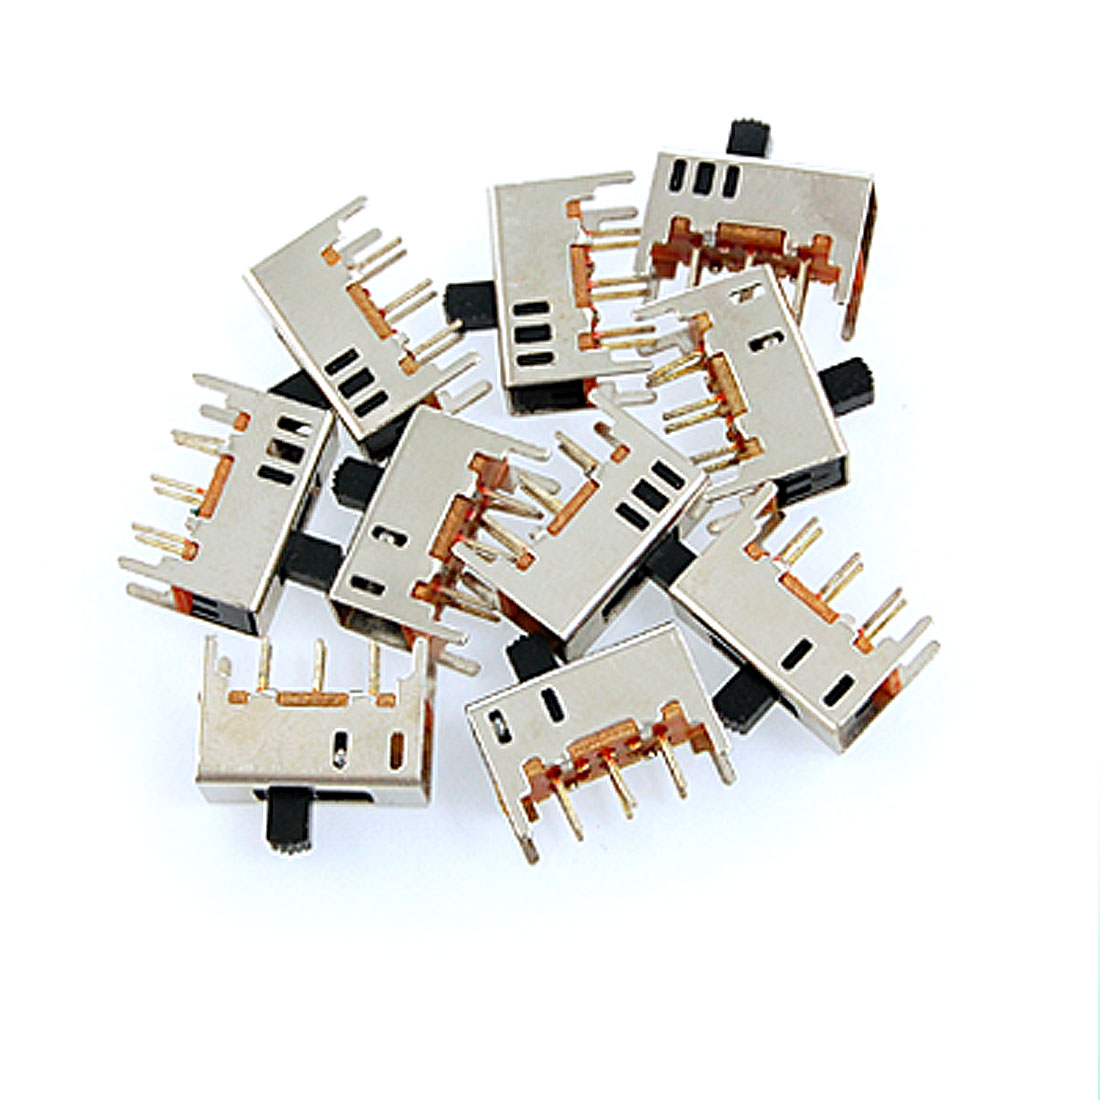 10 Pcs x DC 50V 0.3A On/On 2 Position 2P2T DPDT PCB Vertical Slide Switch 6 Pin